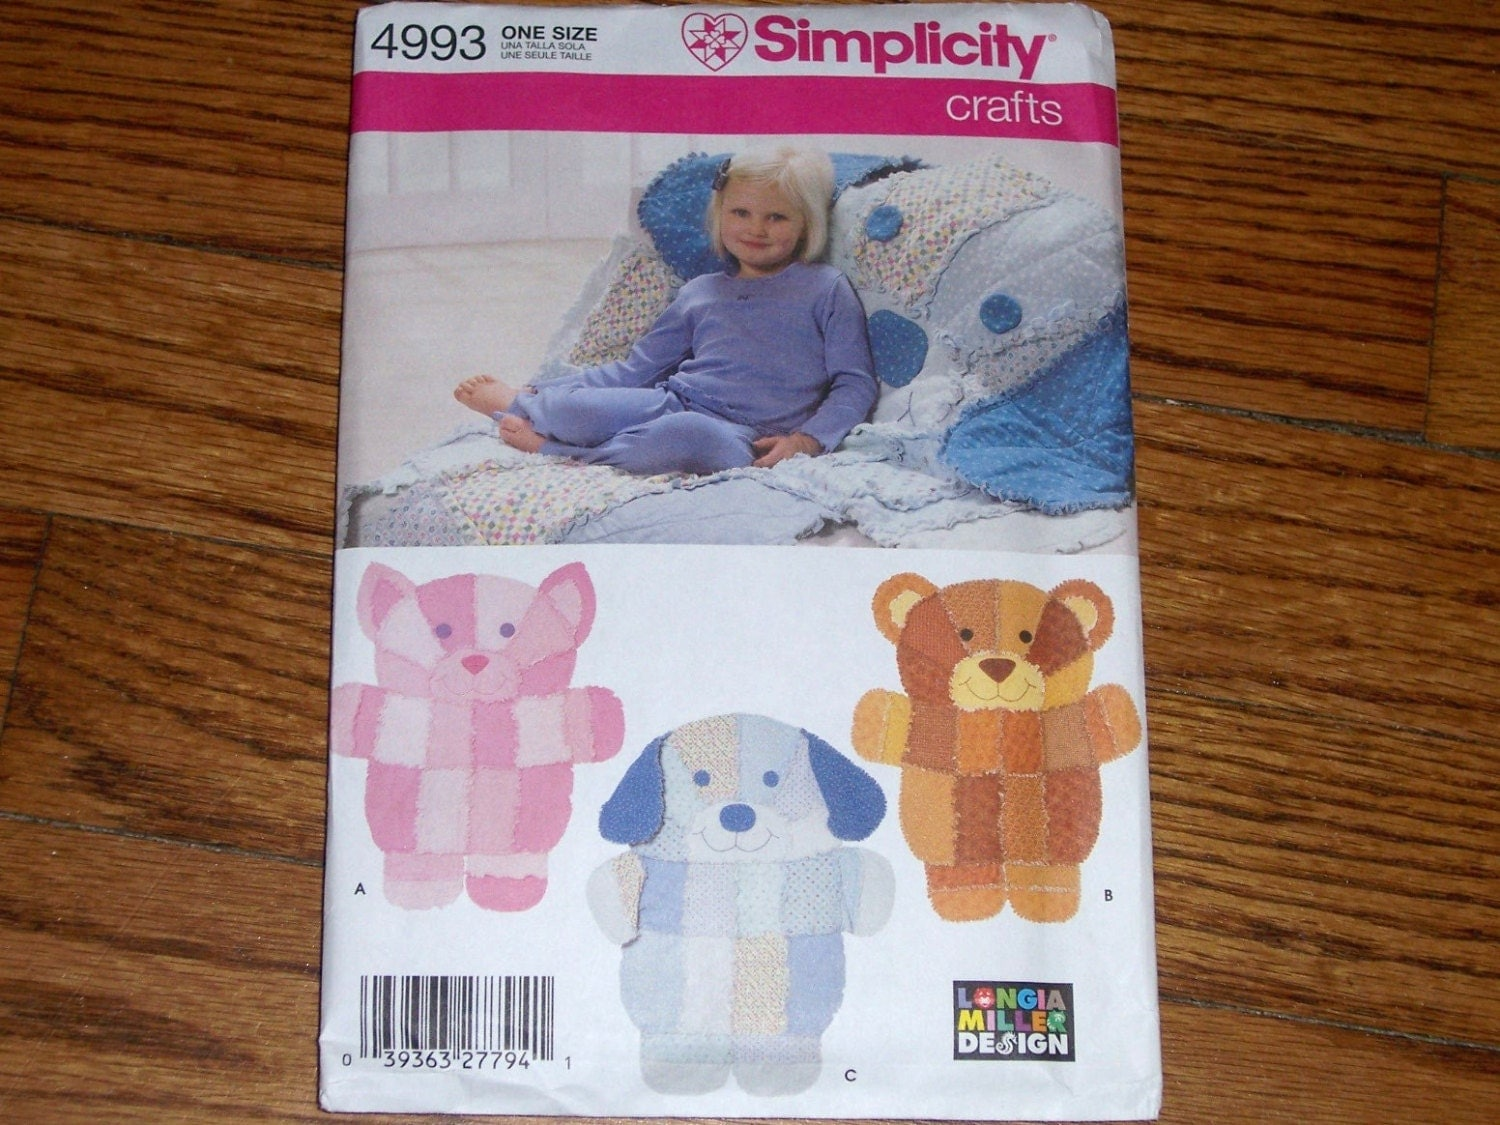 simplicity crafts 4993 longia miller design rag quilt wall On simplicity craft pattern 4993